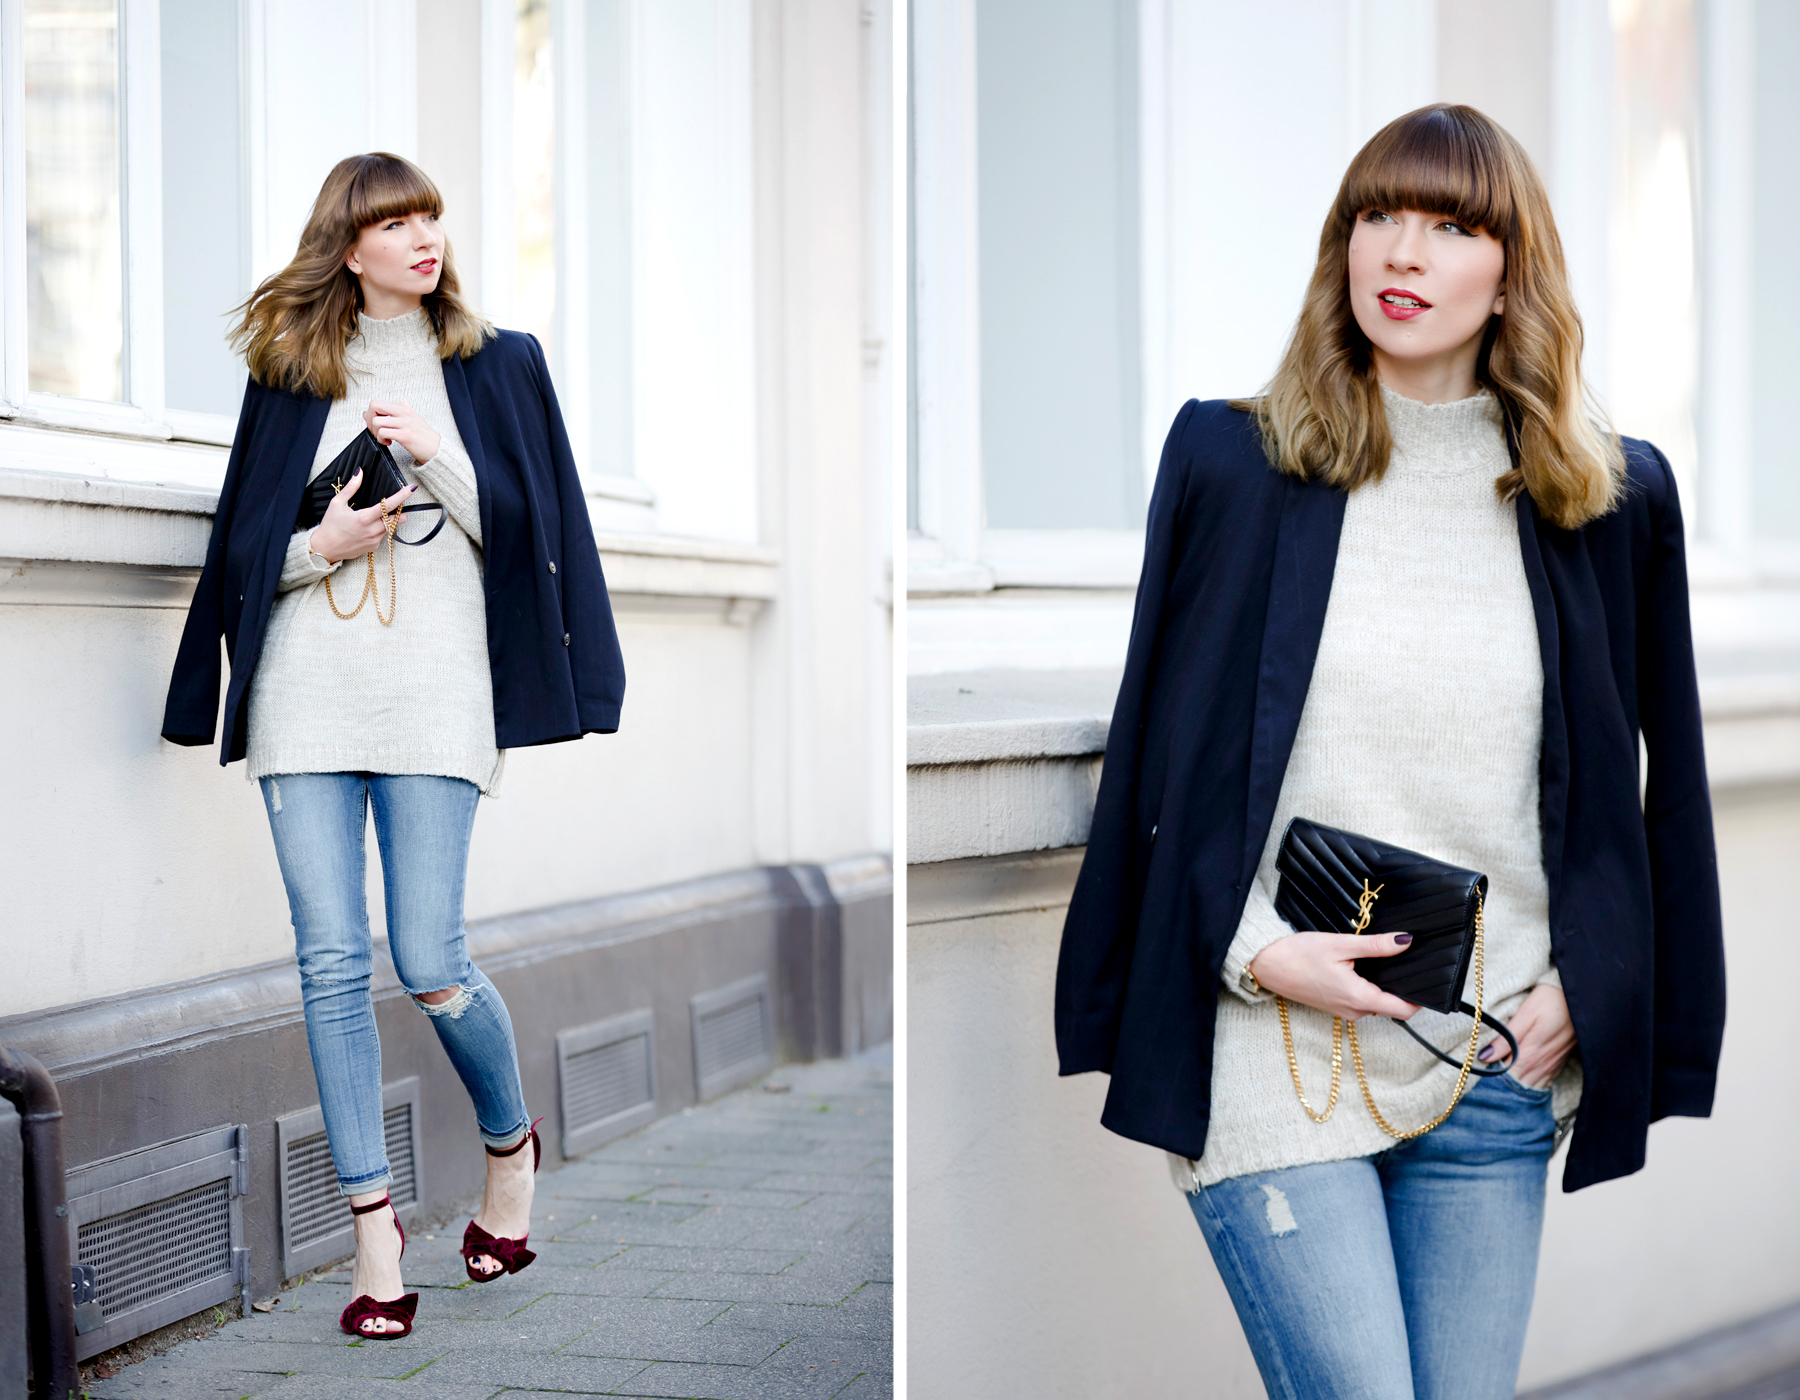 outfit office christmas party casual and velvet red ruby high heels topshop love cute blazer ysl saint laurent paris monogram bag rosefield watch ricarda schernus cats & dogs fashionblogger ootd outfitblogger blue jeans styleblogger dusseldorf nrw  2